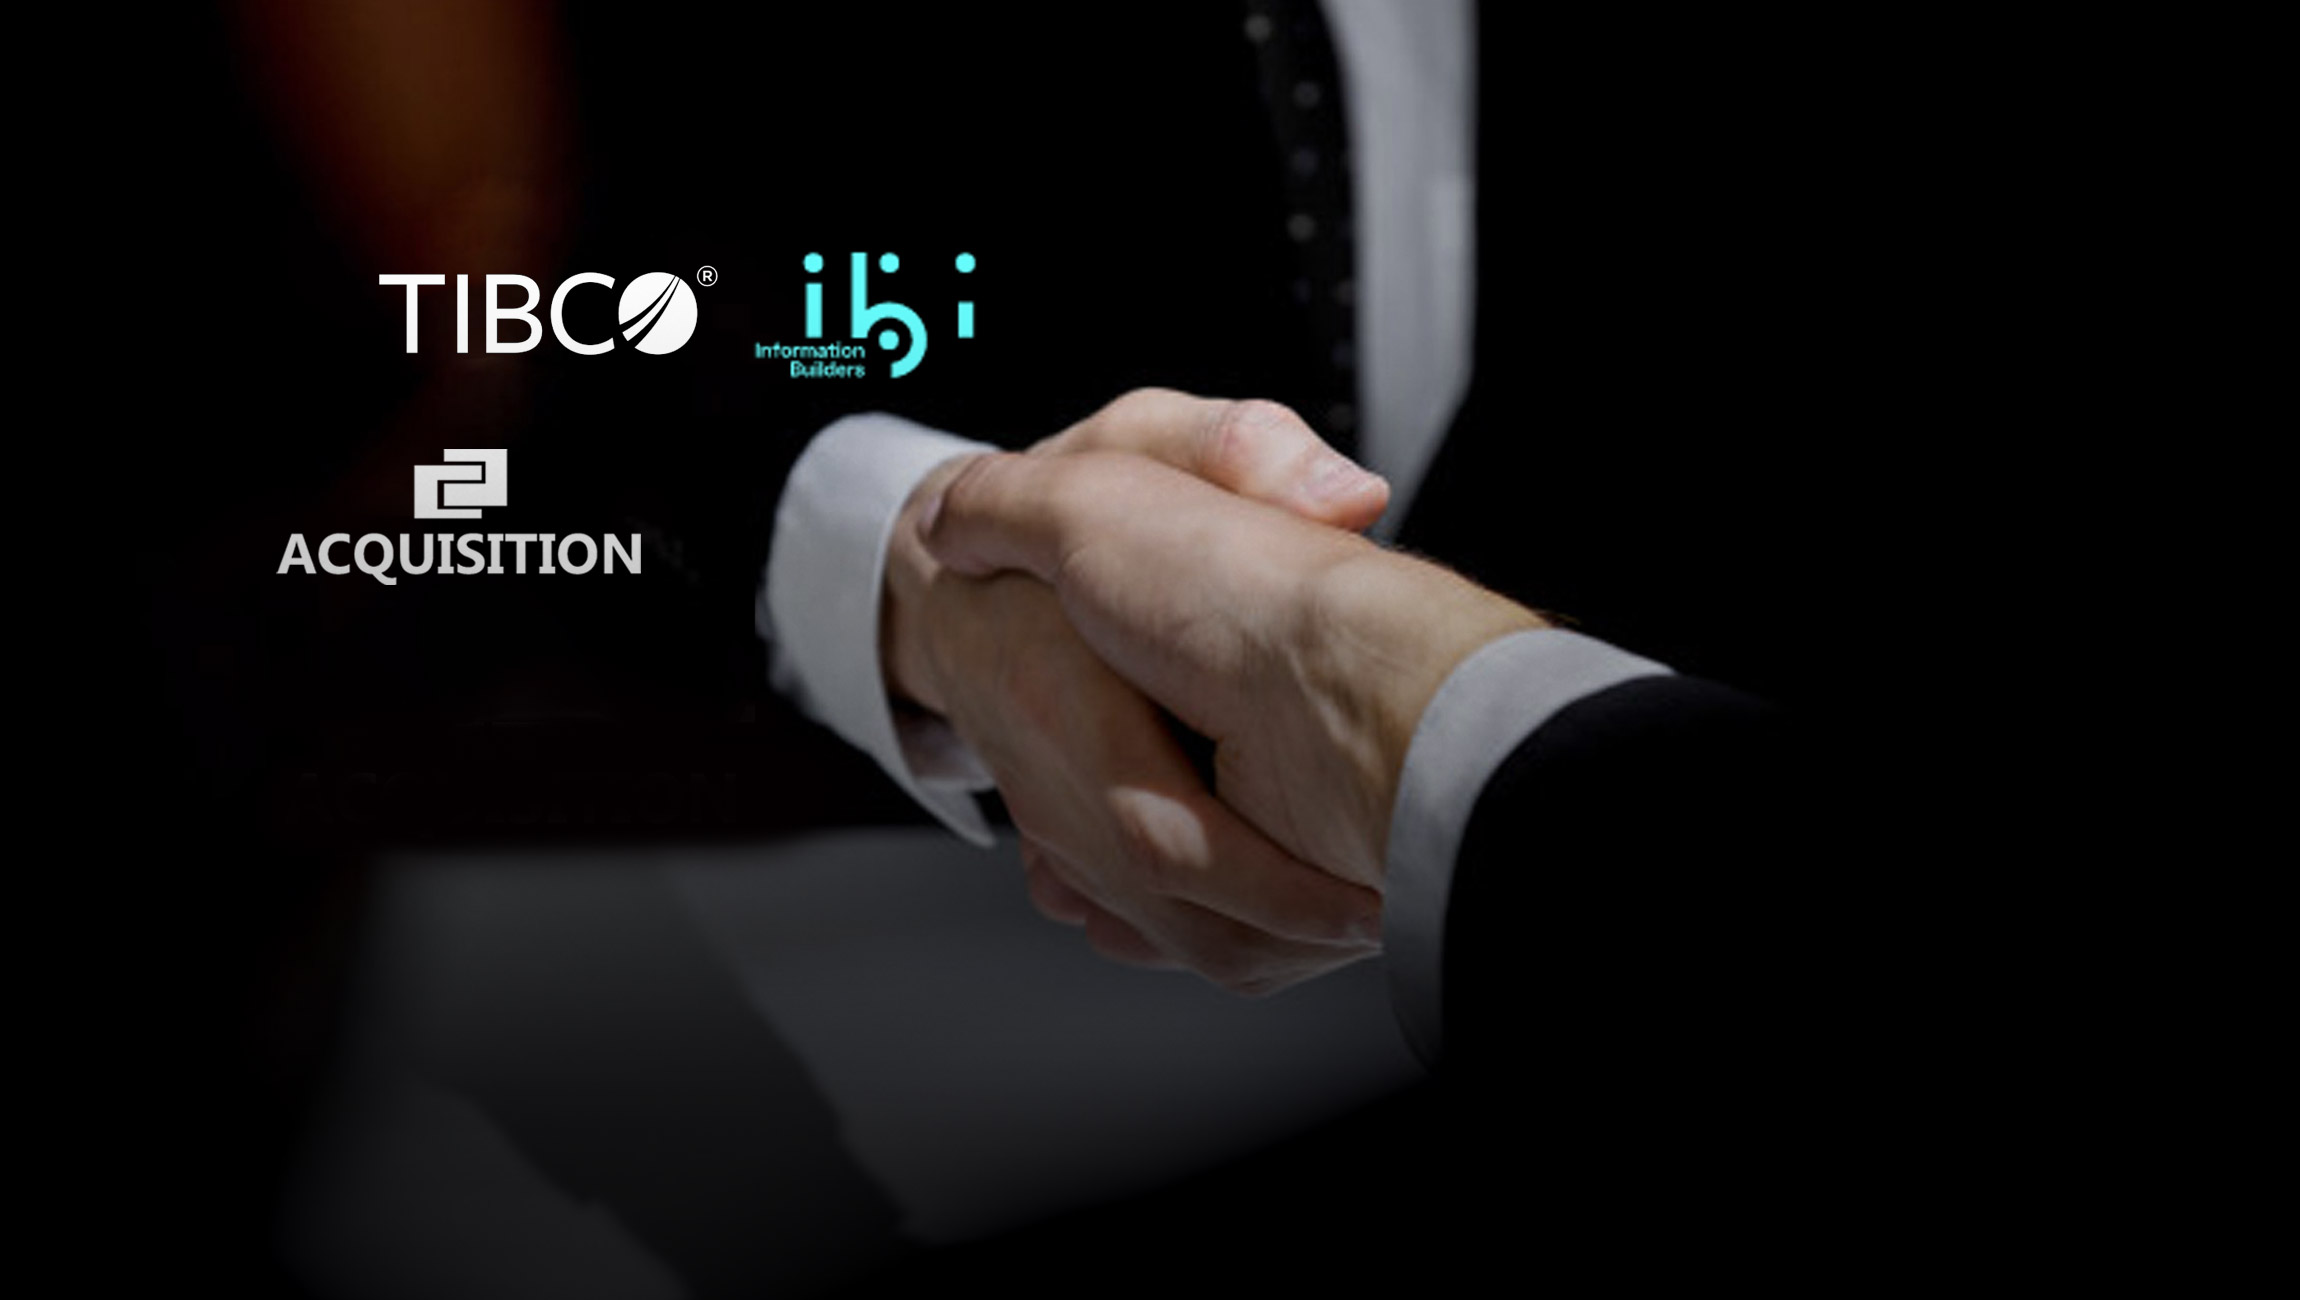 TIBCO Announces Agreement to Acquire Information Builders, Inc.